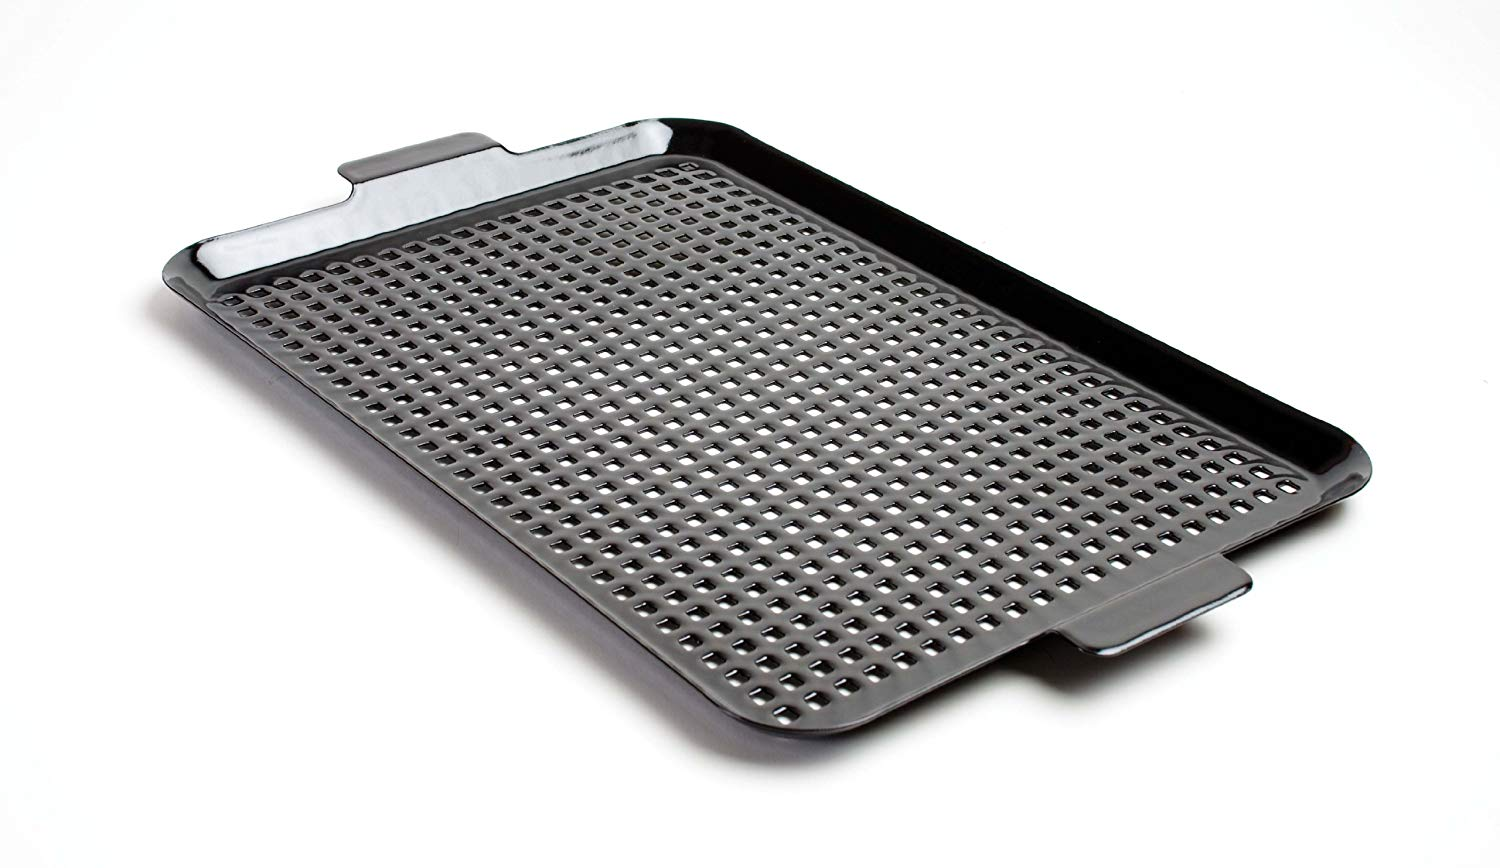 Charcoal Companion Porcelain-Coated Grilling Grid: For an extravagant cooking experience